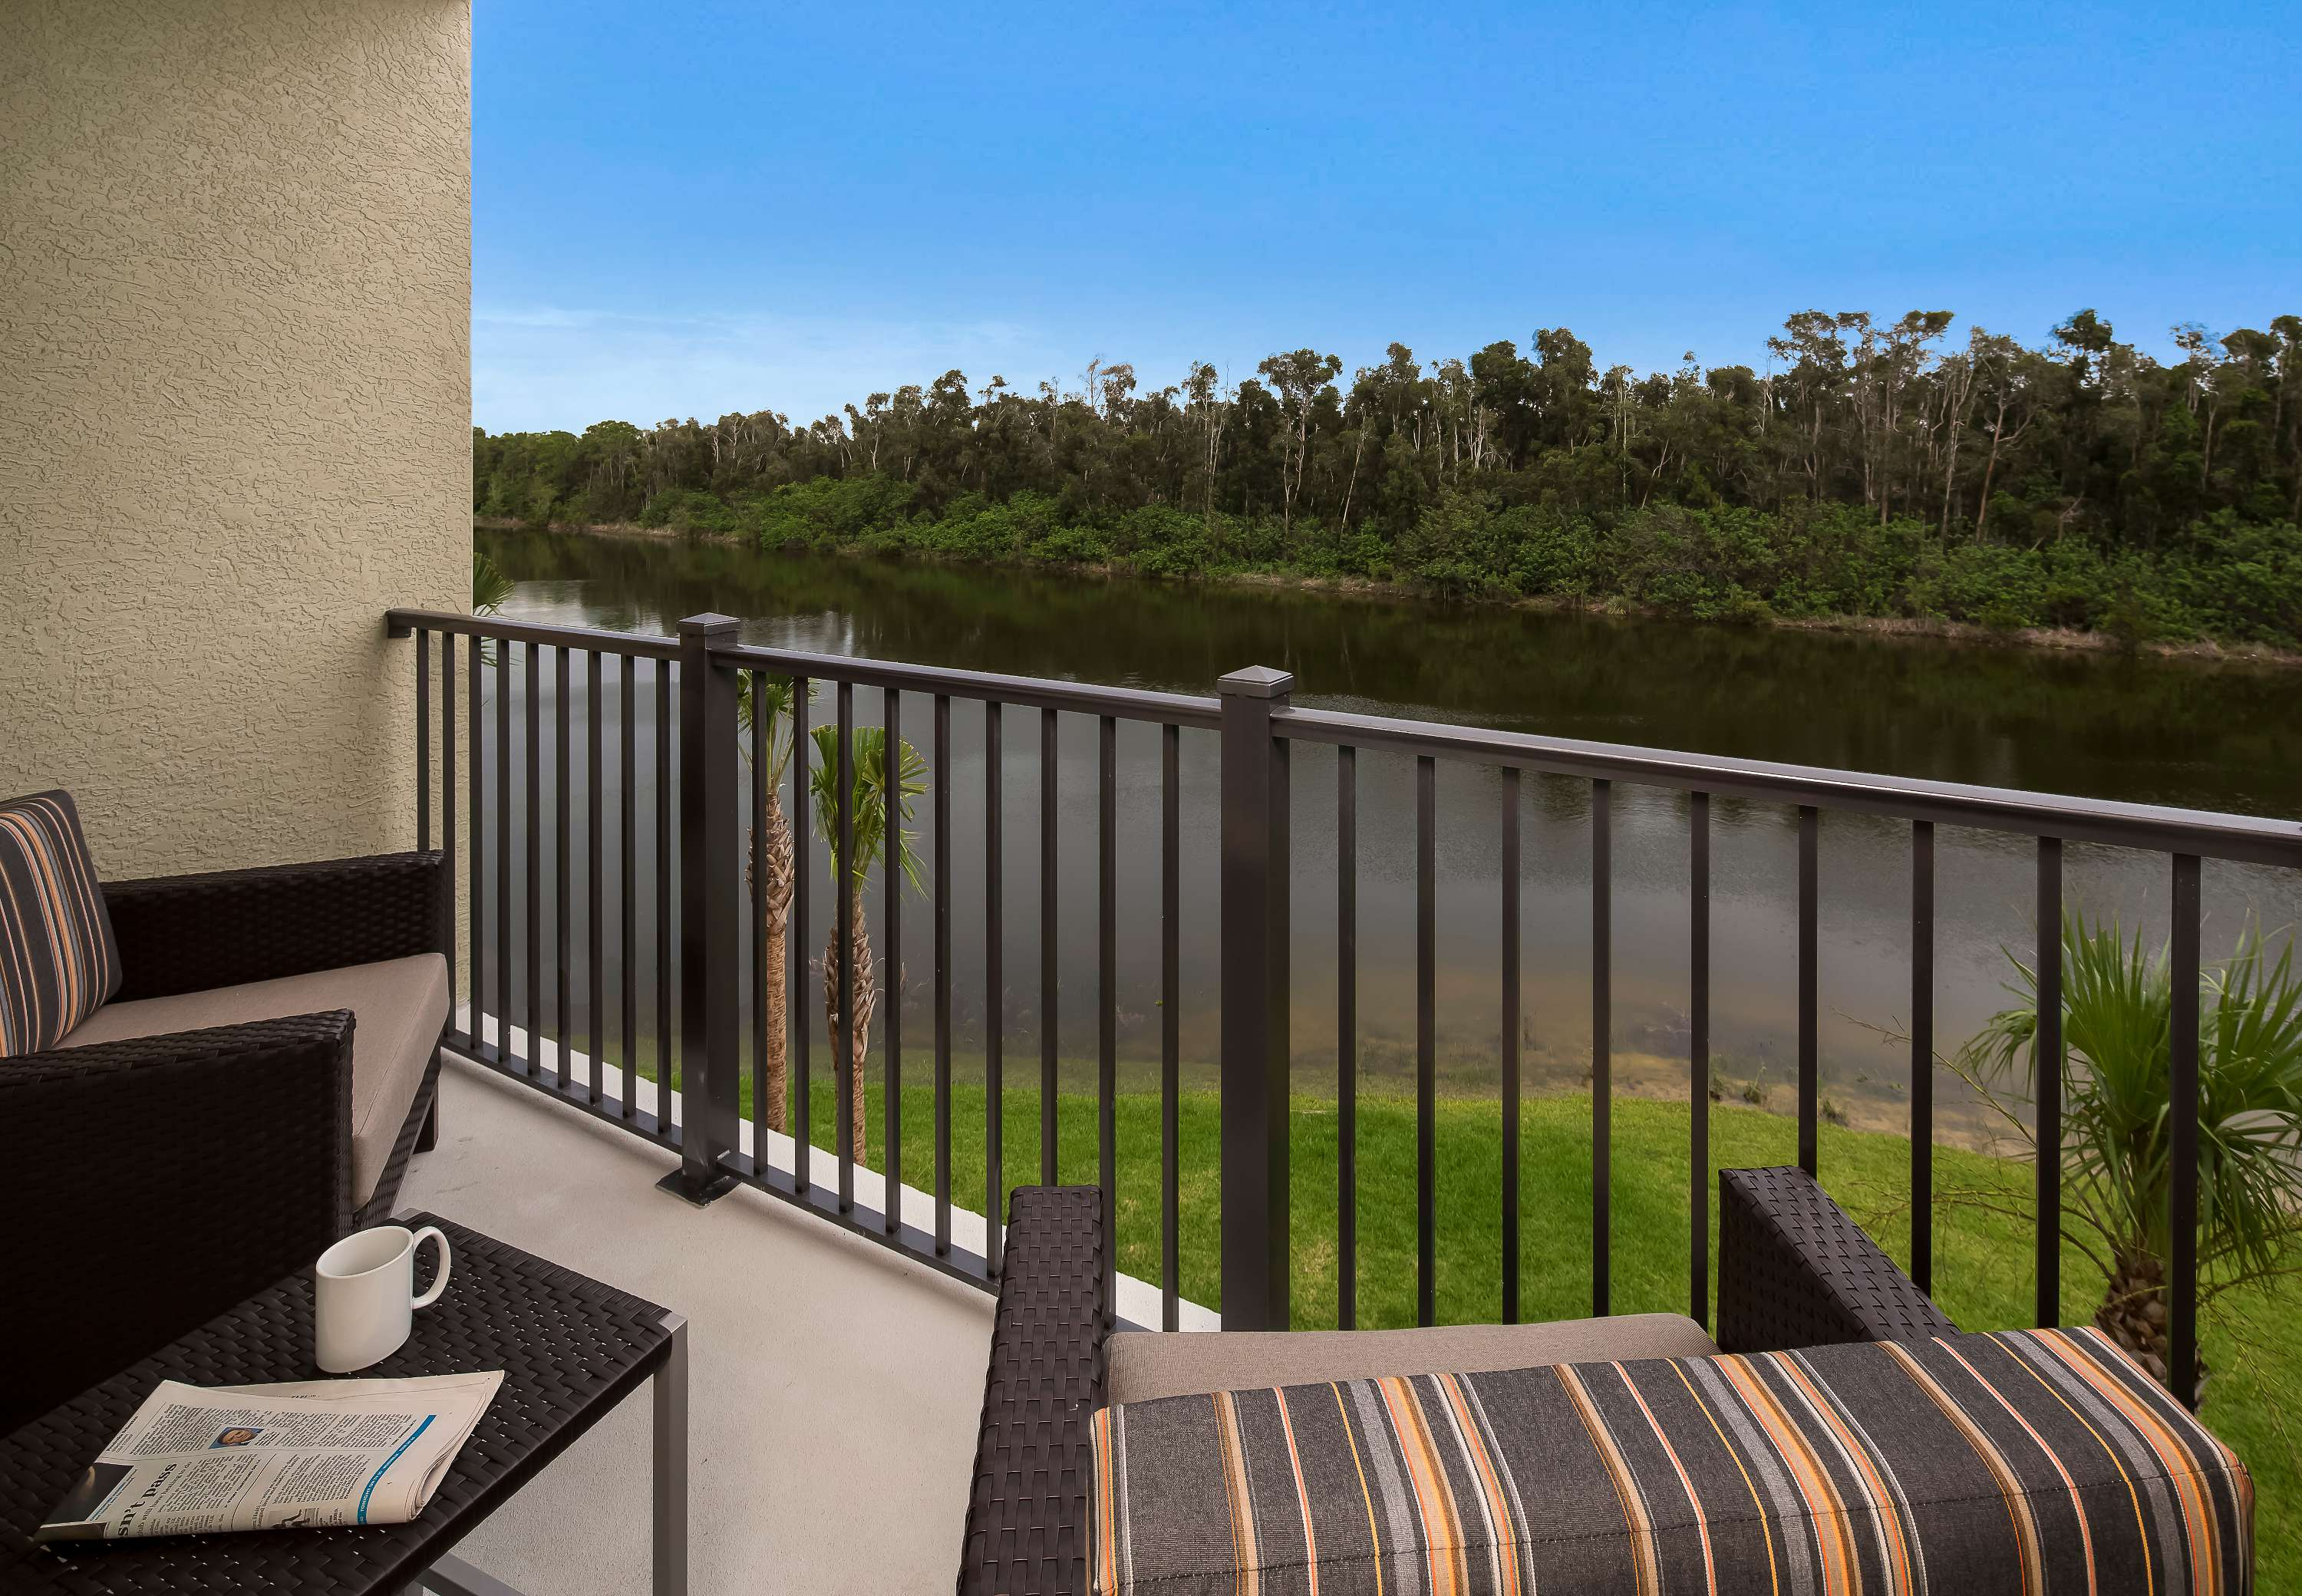 TownePlace Suites by Marriott Fort Myers Estero image 10